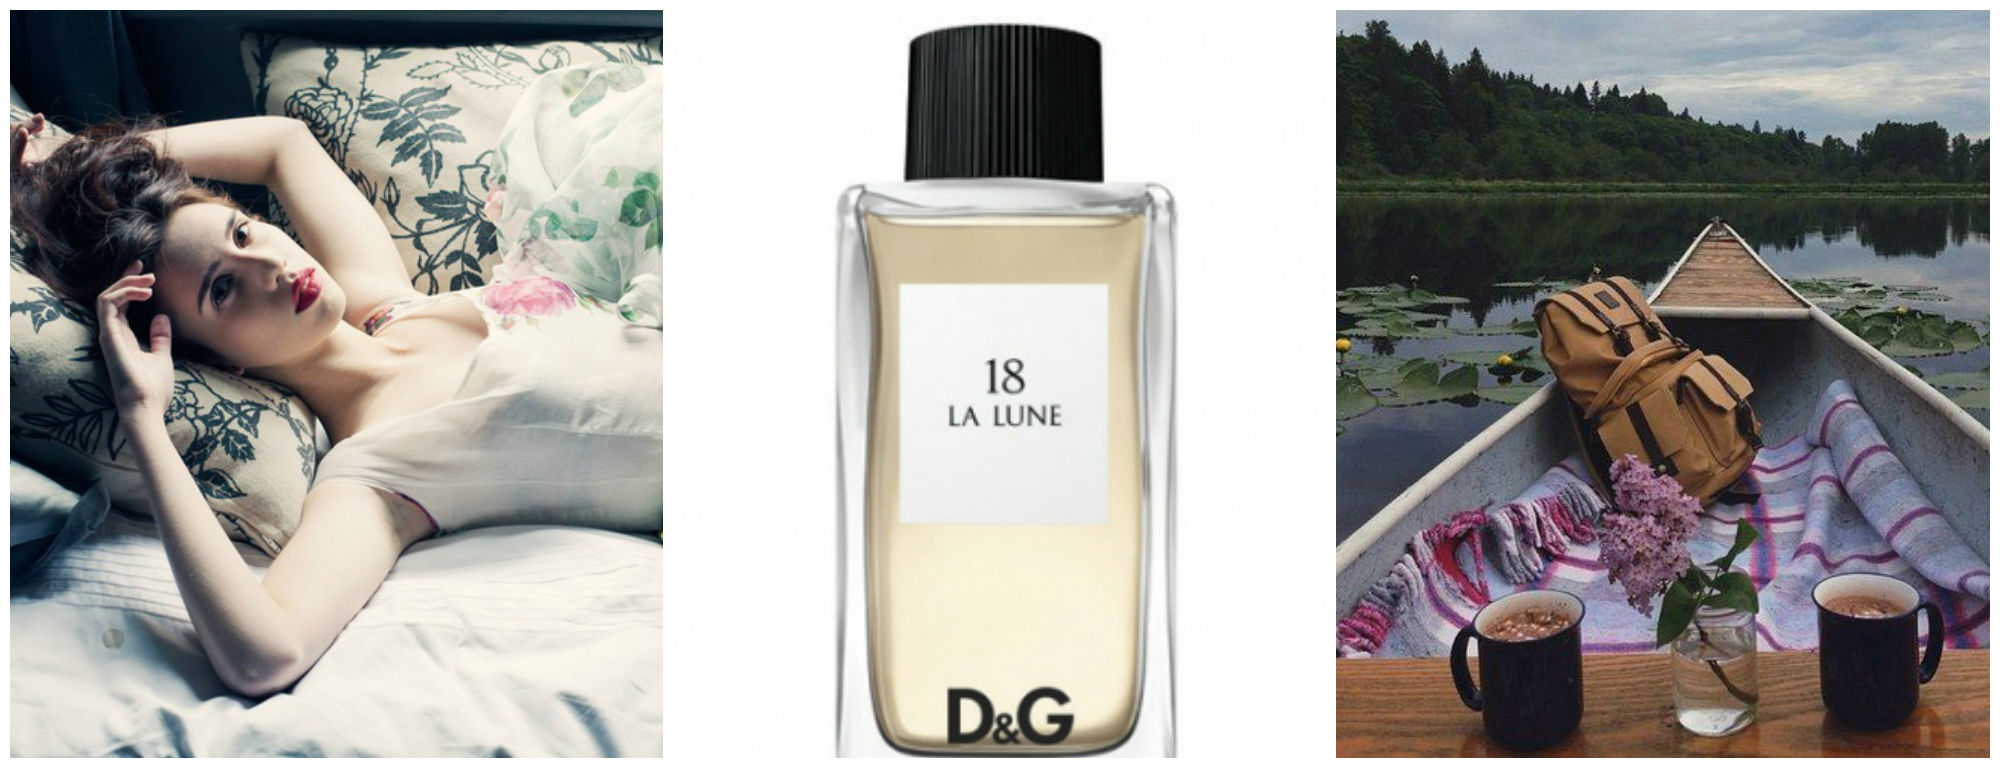 Perfume of the Day: Dolce and Gabbana 18 La Lune